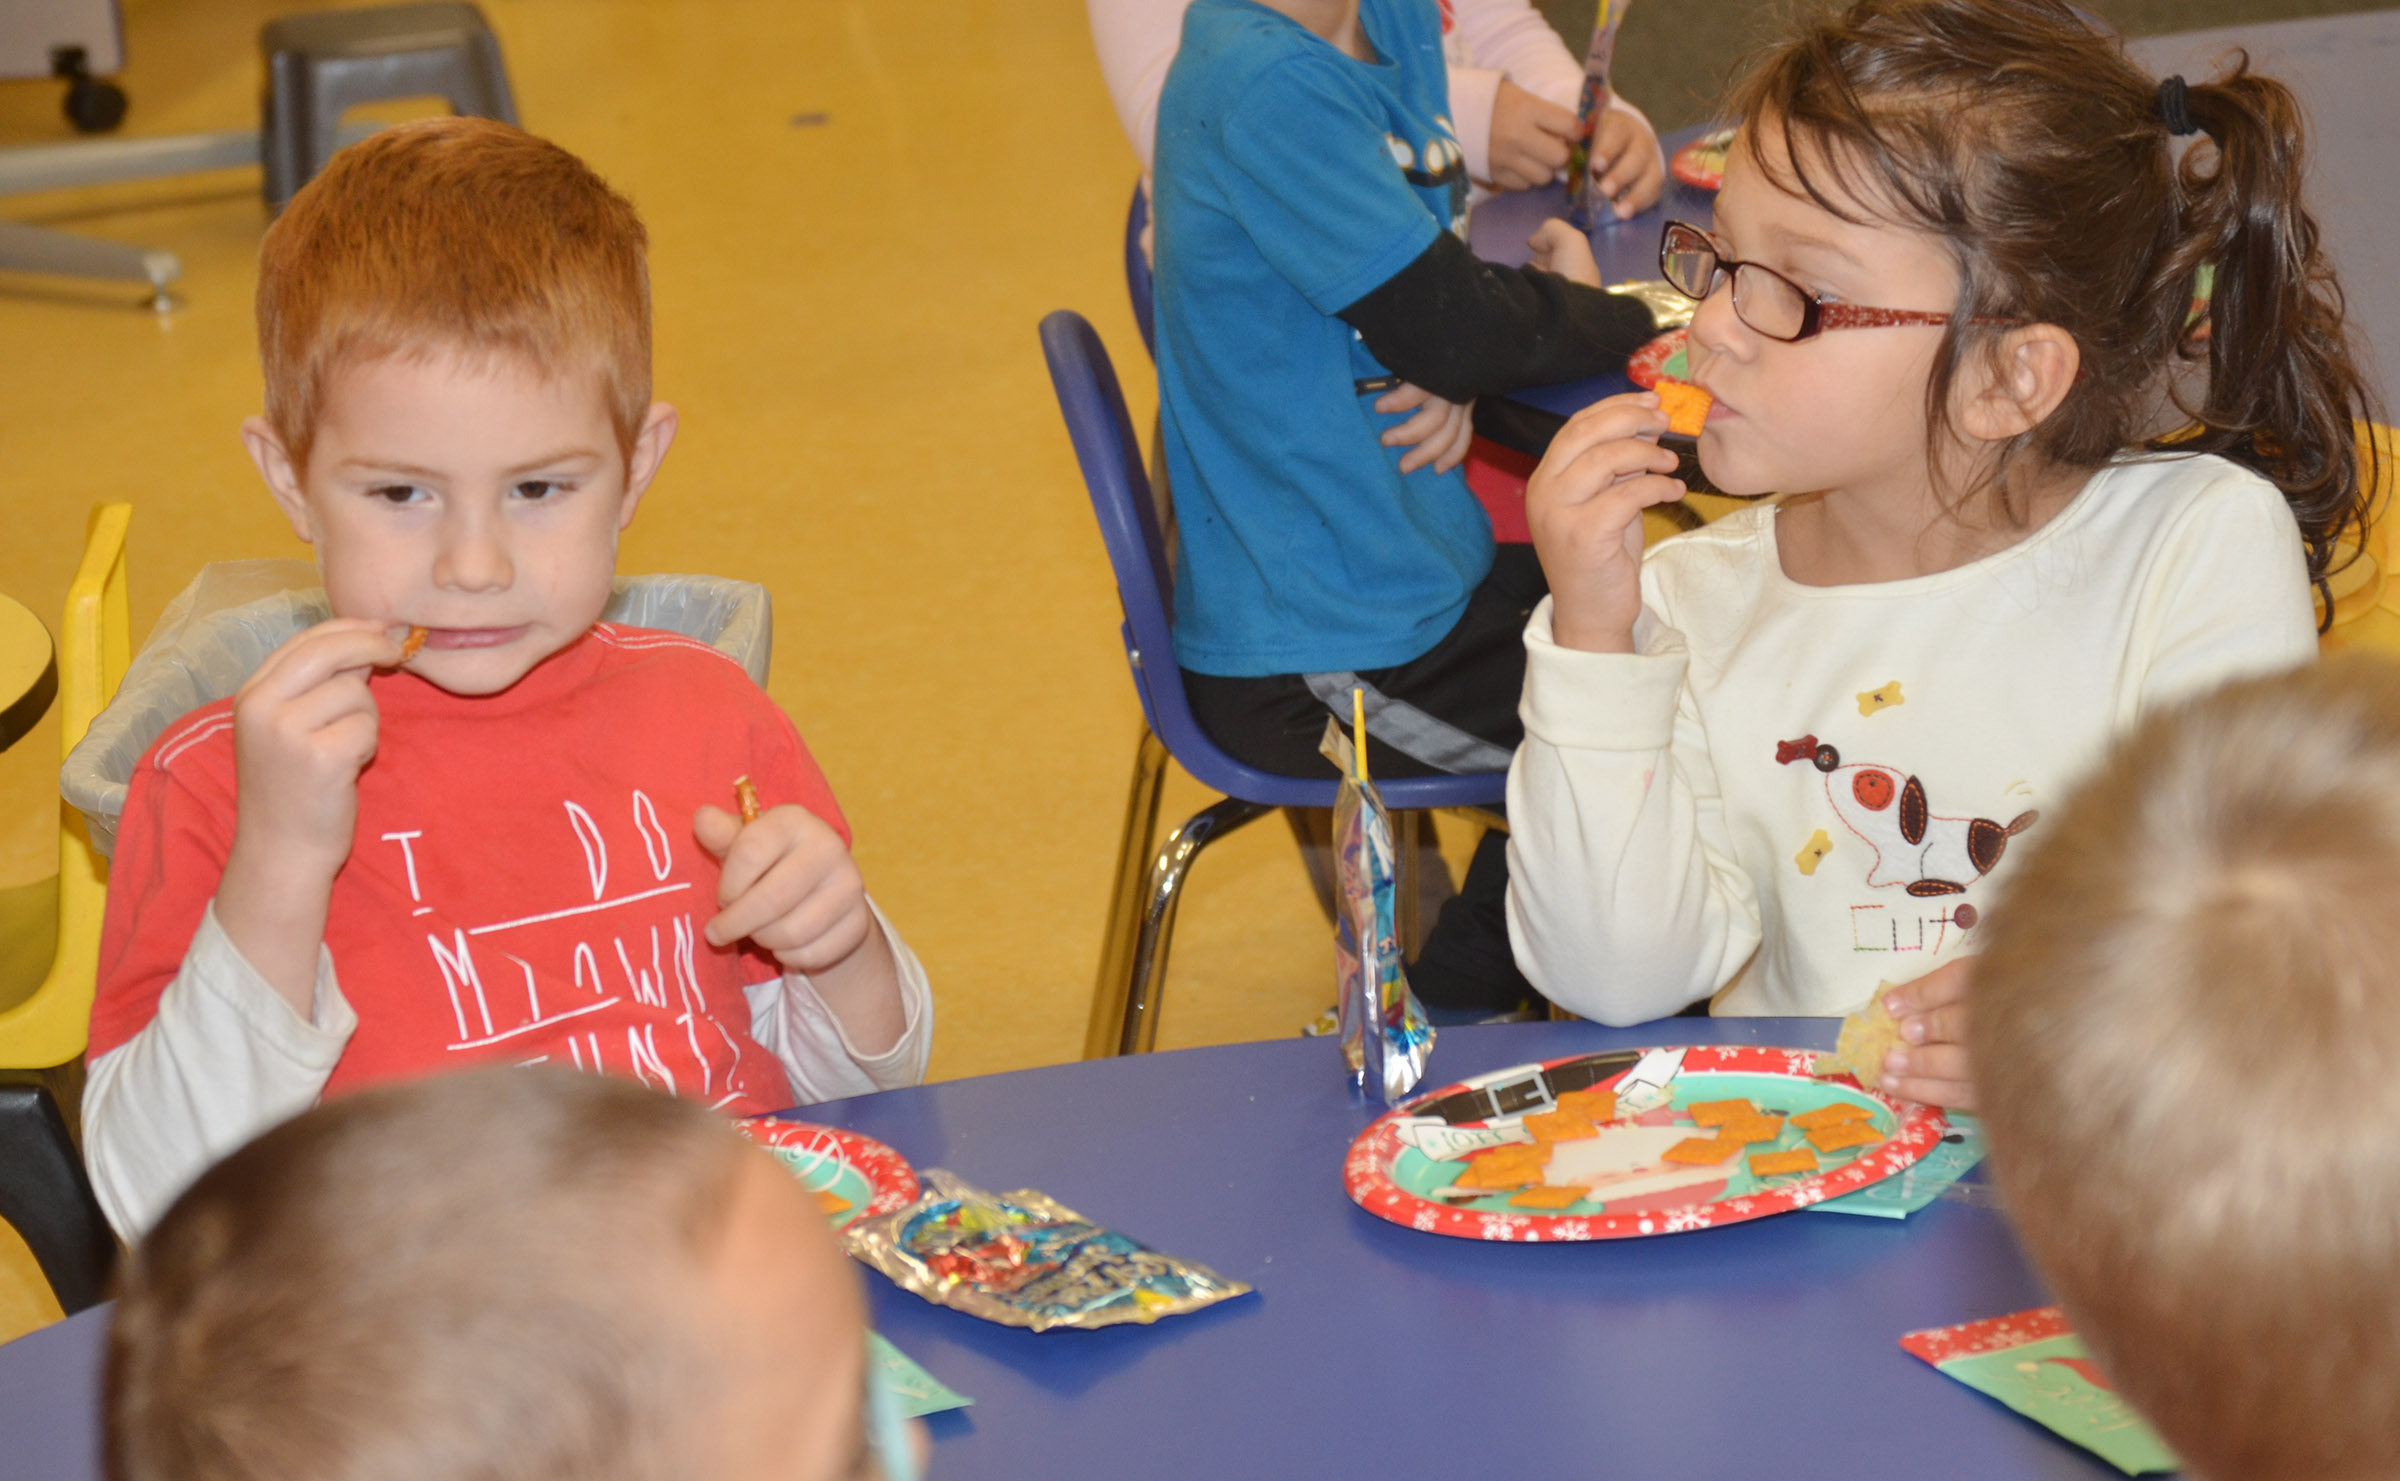 CES preschool students Kennon Dotson, at left, and Rylee Karr enjoy their snacks.